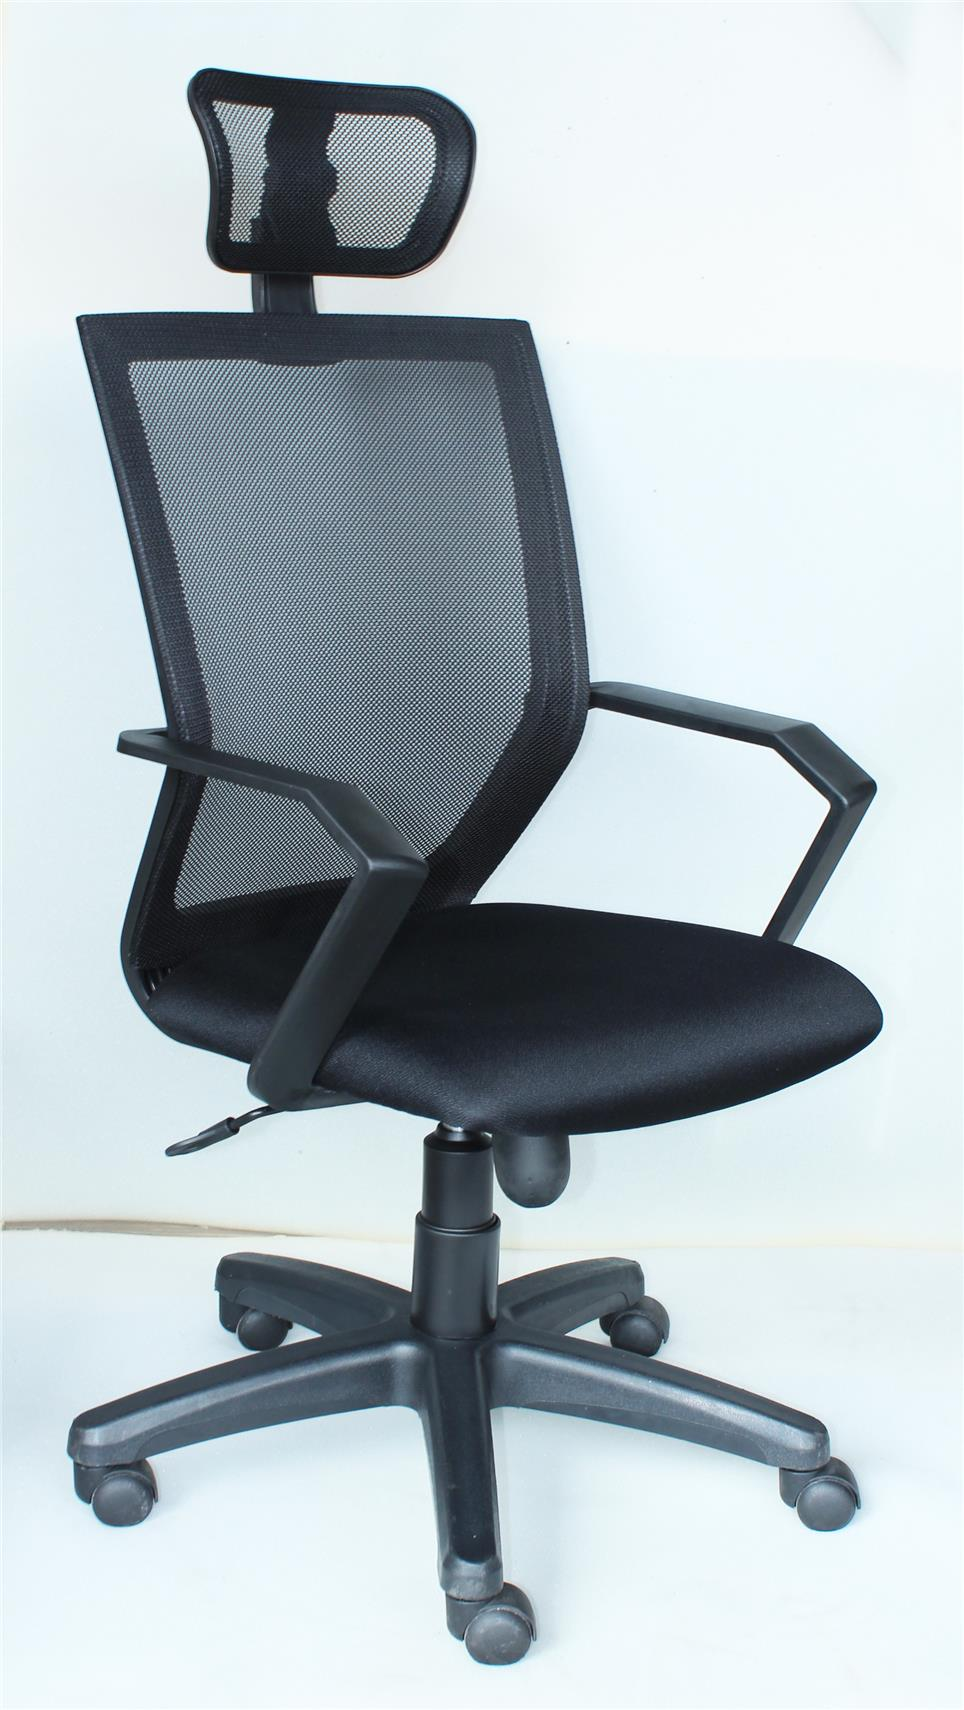 Ergonomic Highback Office Mesh Chair A07-0121